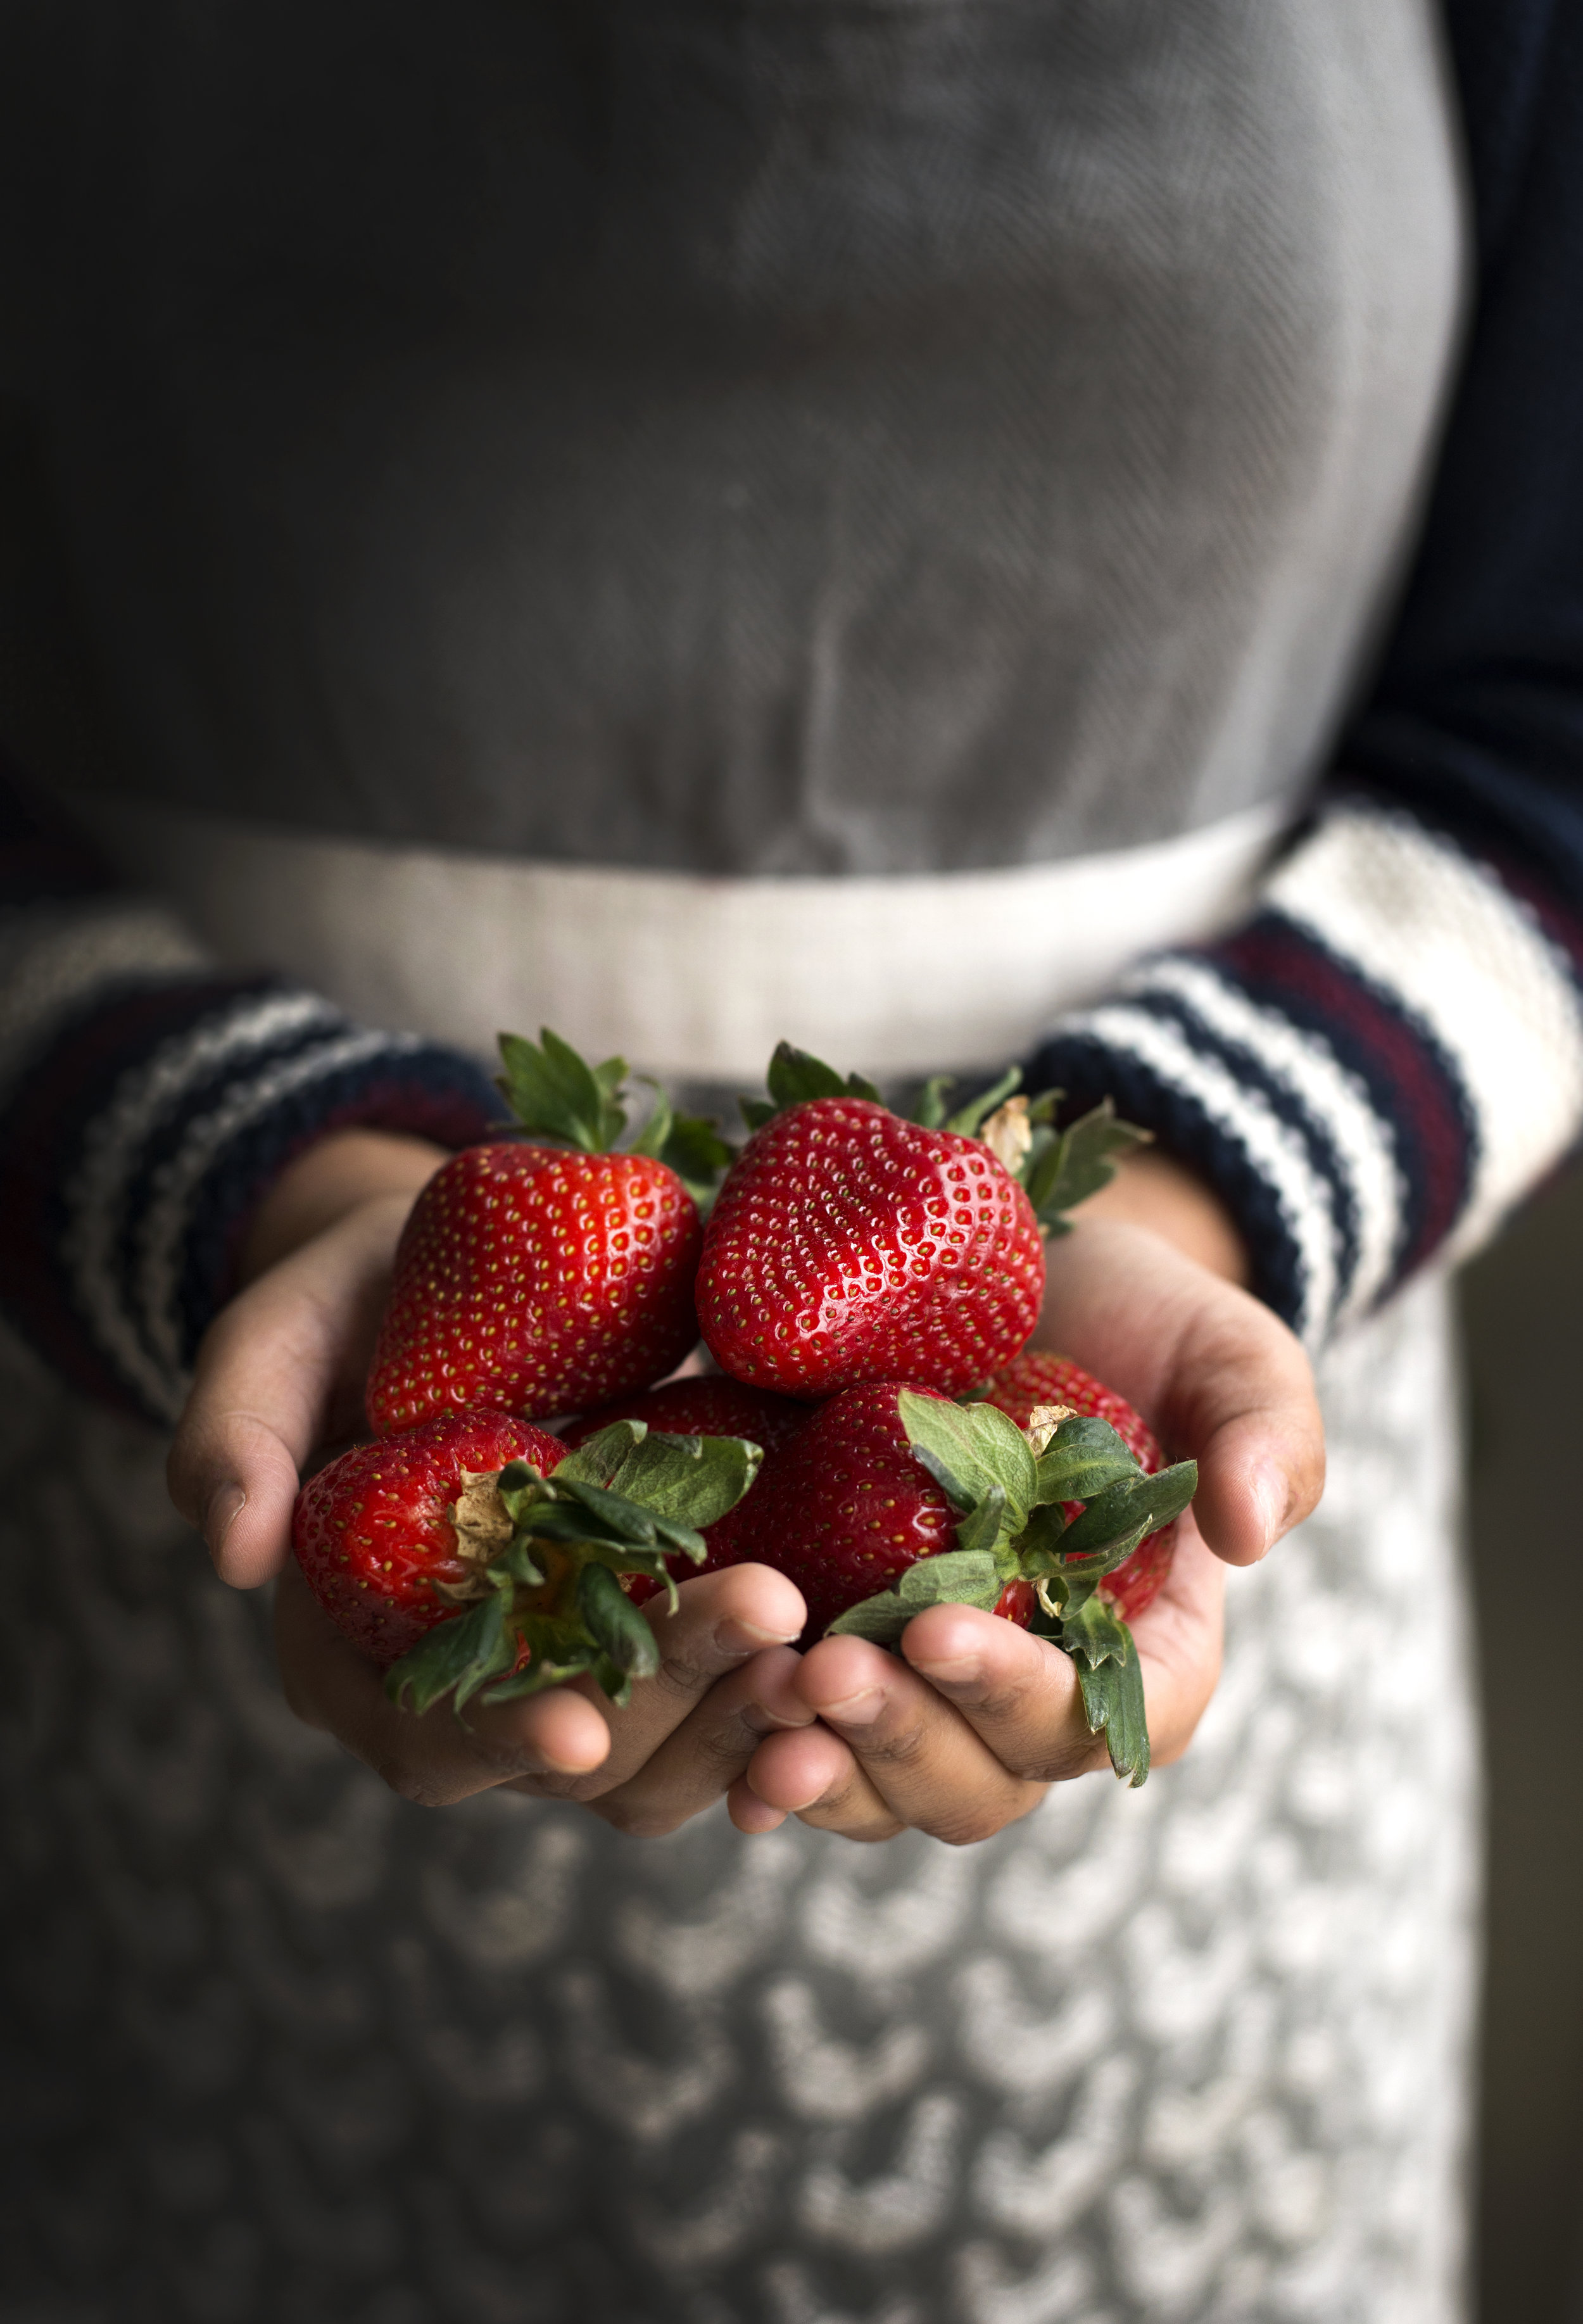 Strawberriesinhand-HR-SimiJois-2016.jpg